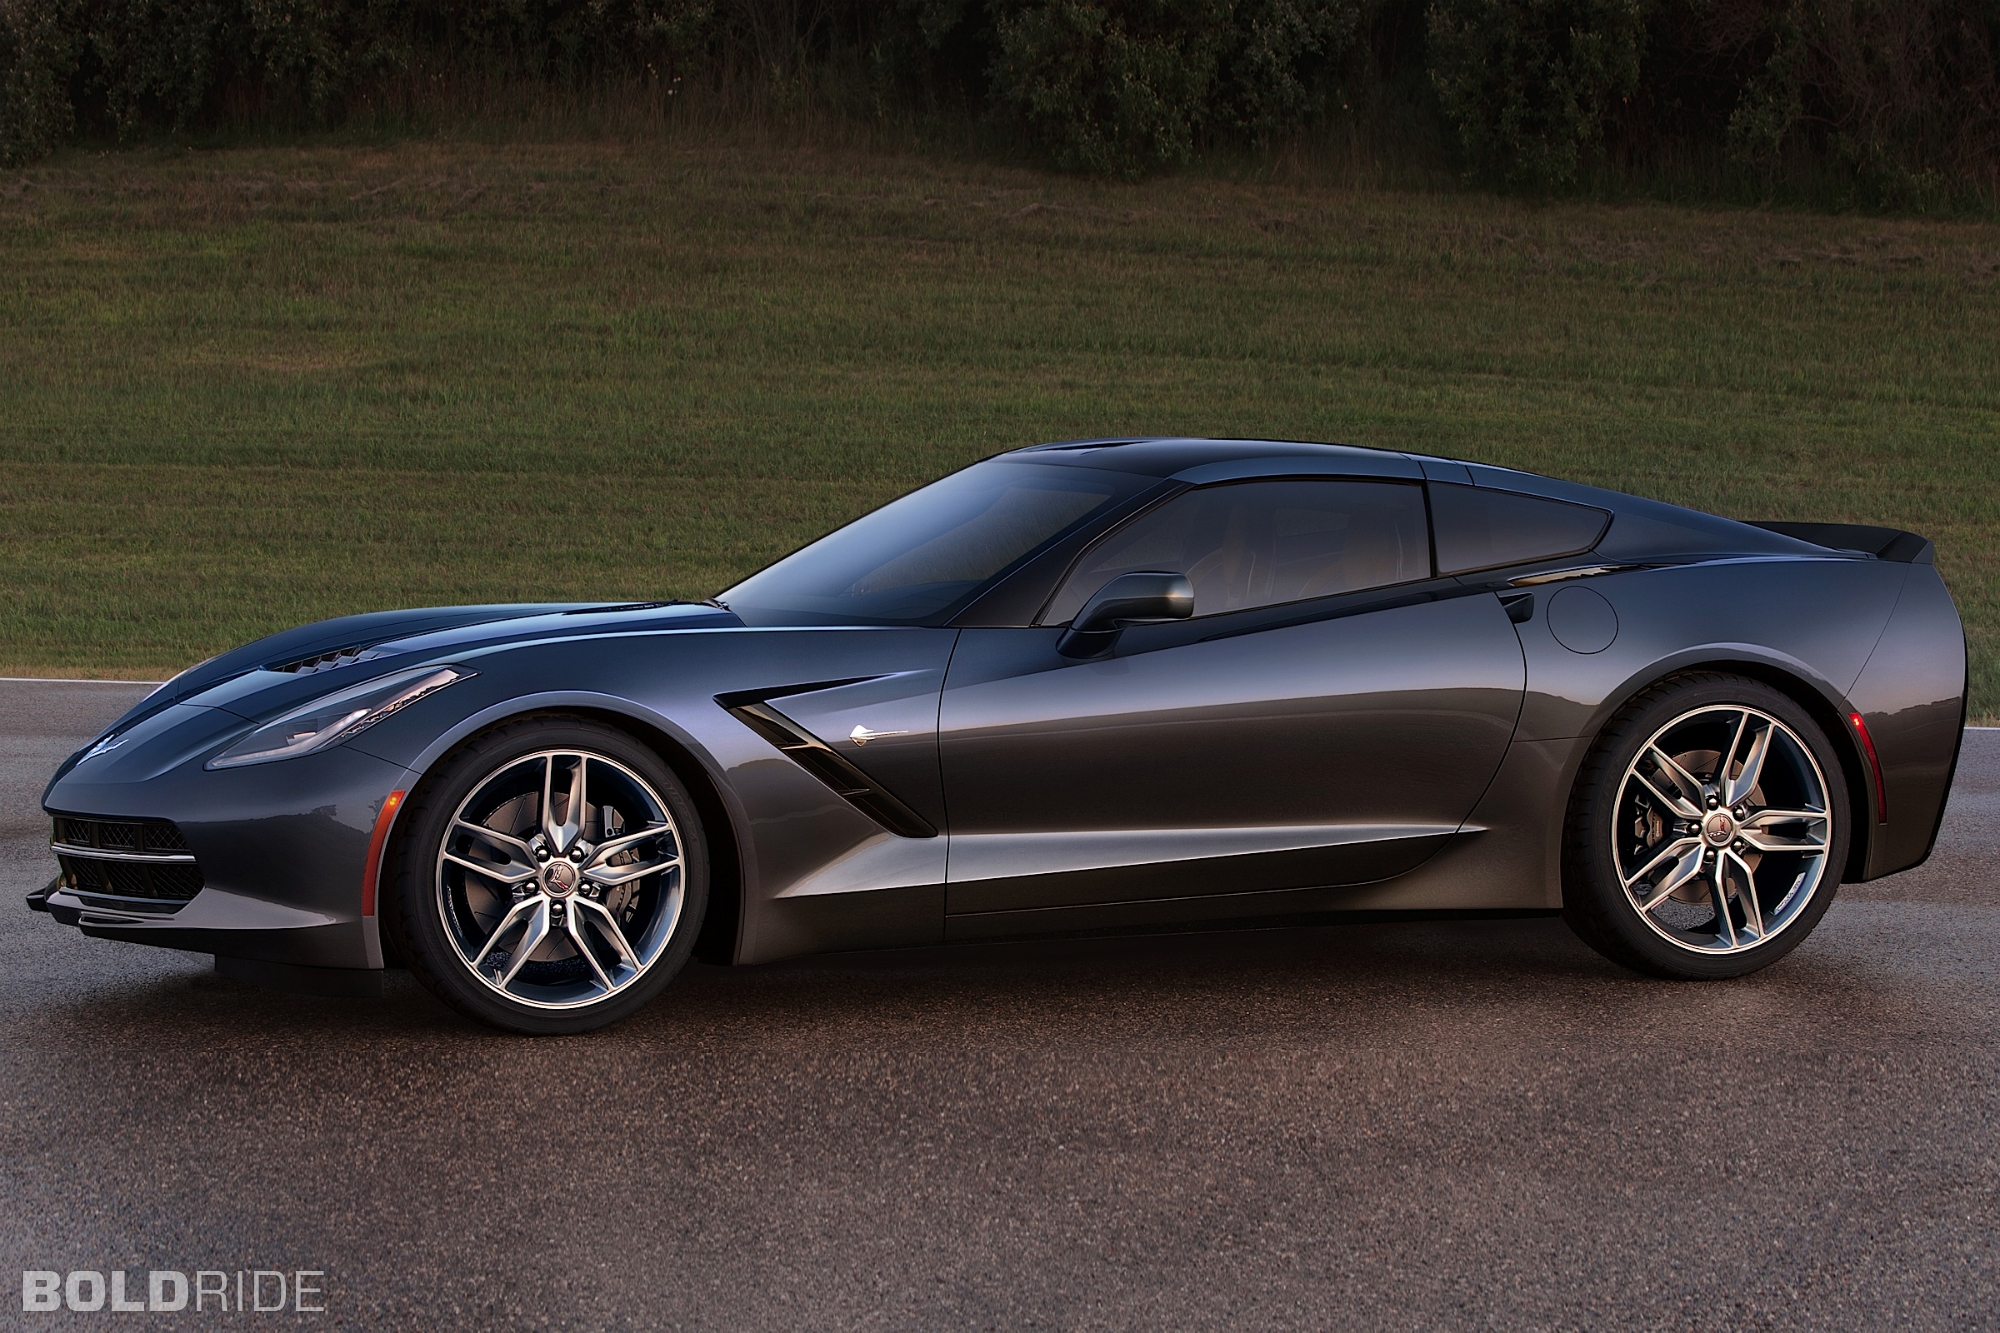 Chevrolet Corvette Stingray #7